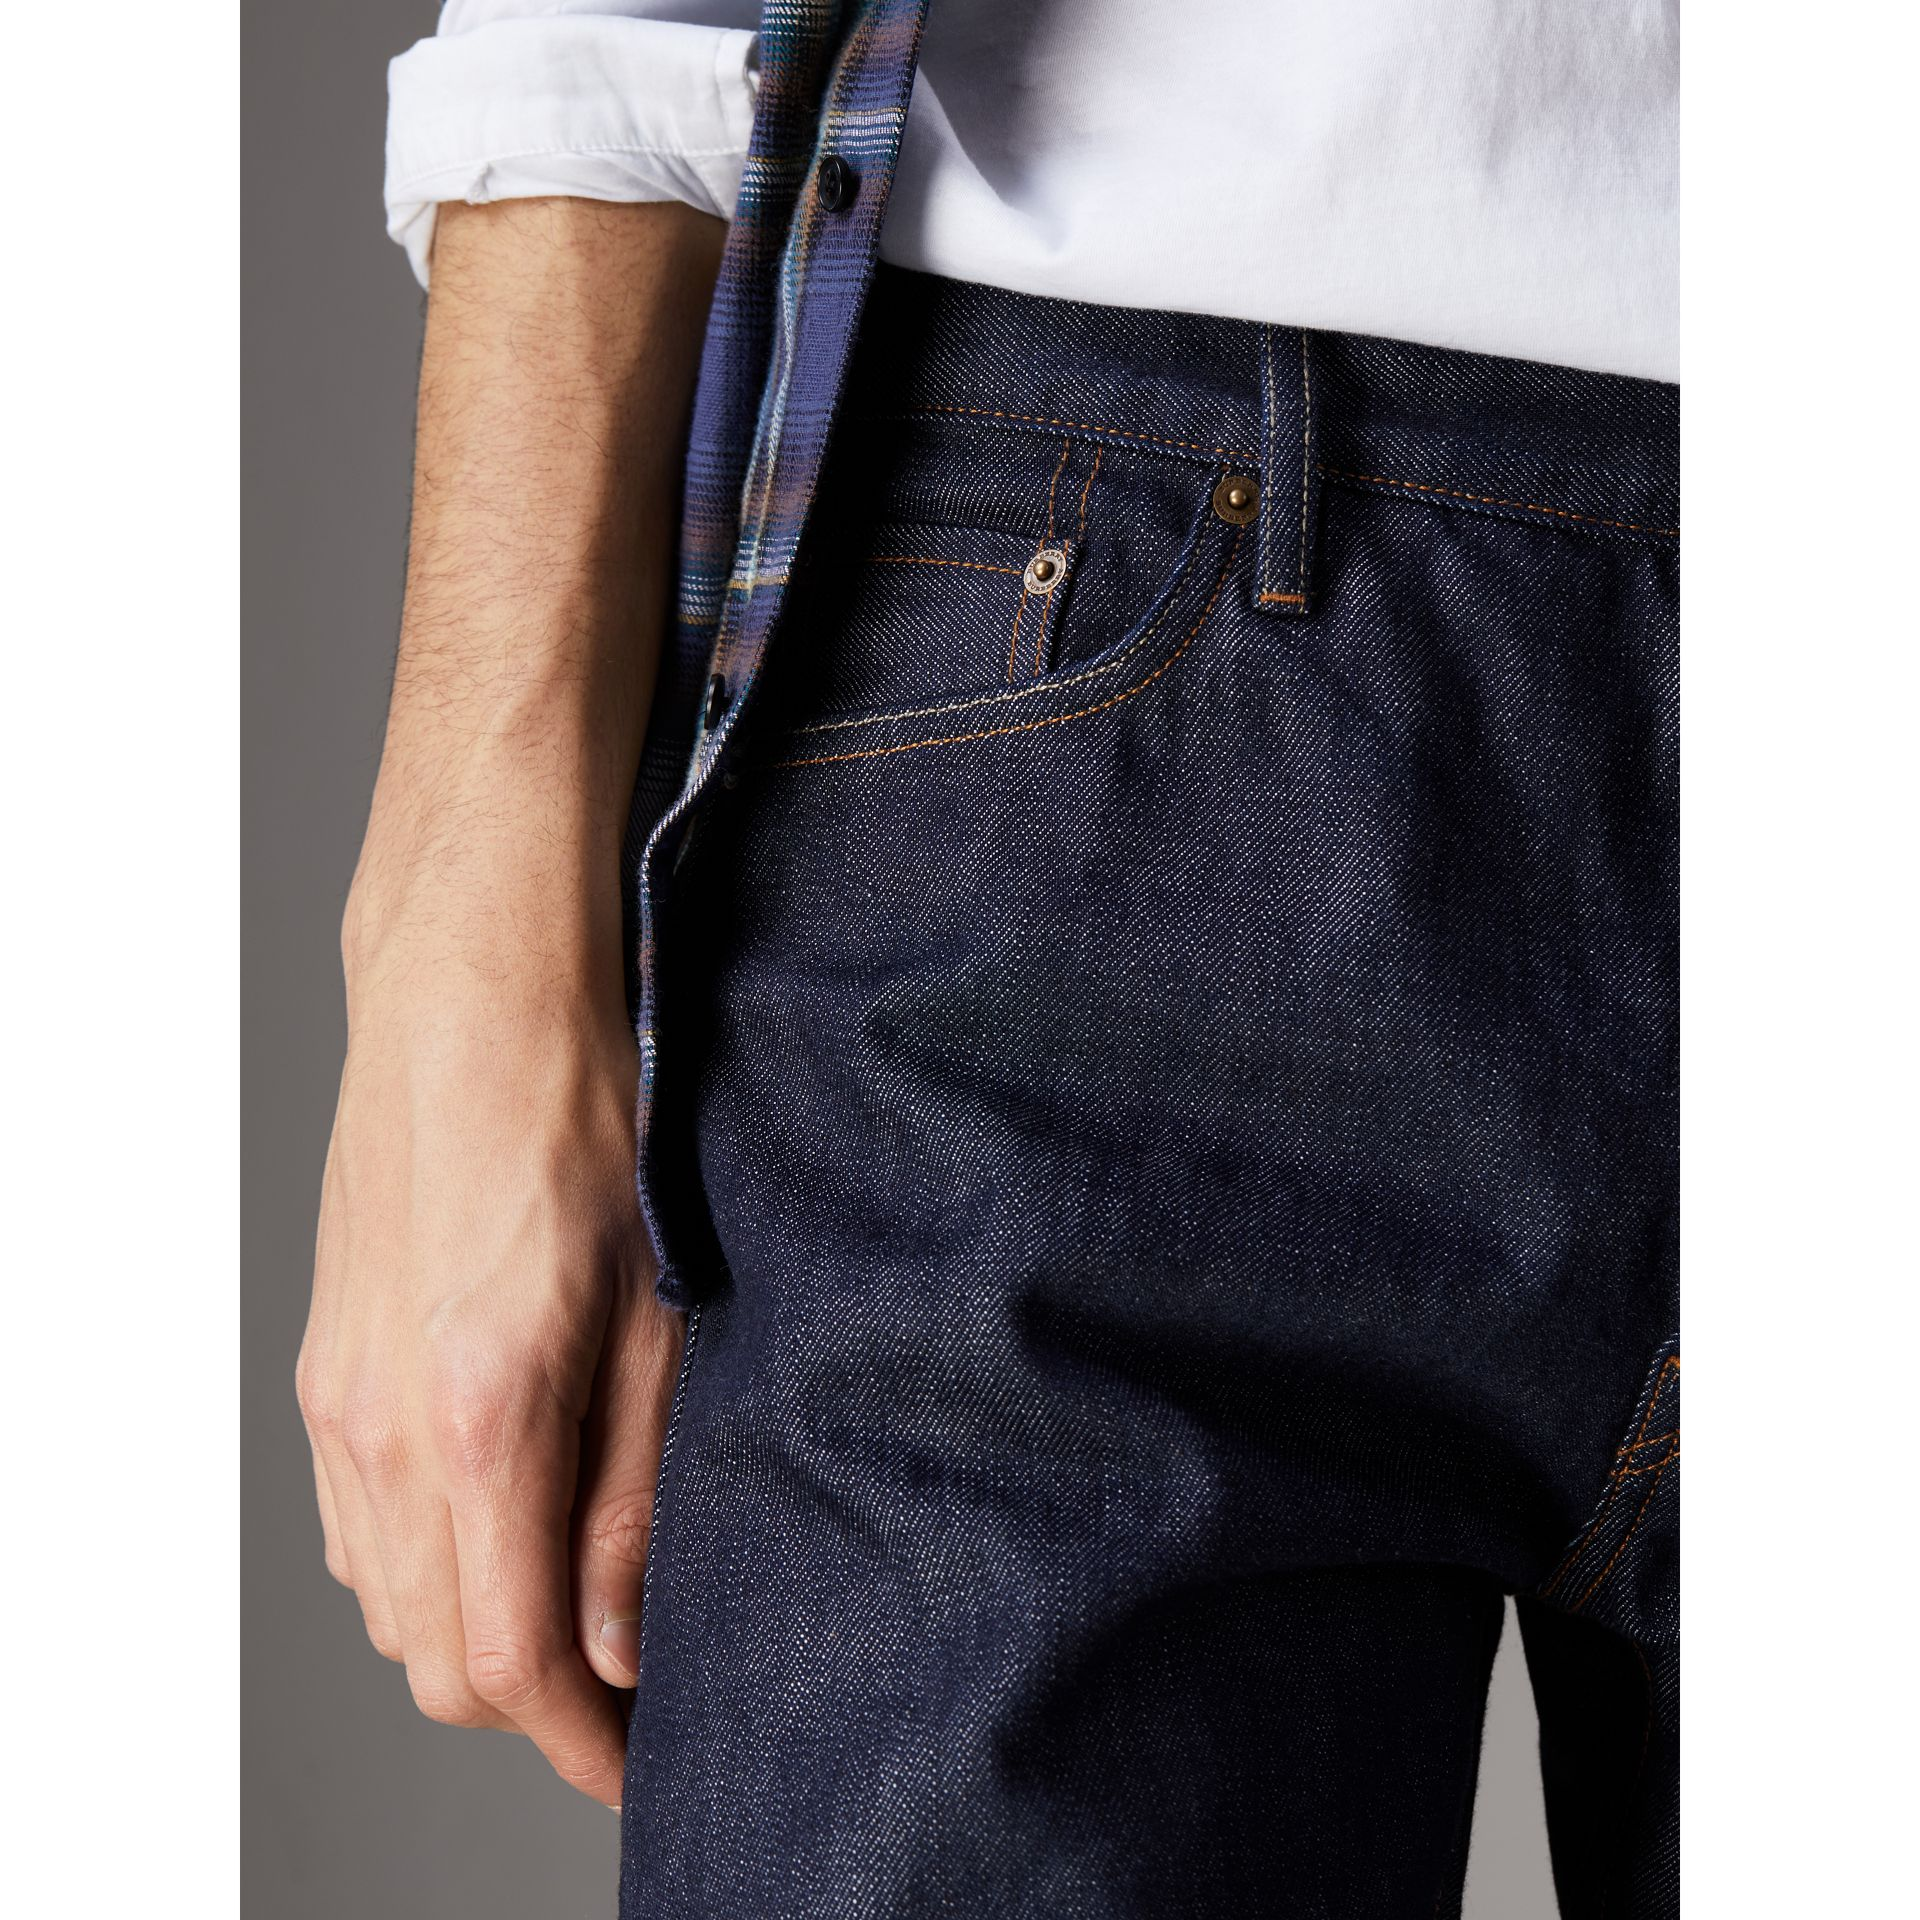 Relaxed Fit Japanese Selvedge Denim Jeans in Mid Indigo Blue - Men | Burberry - gallery image 1